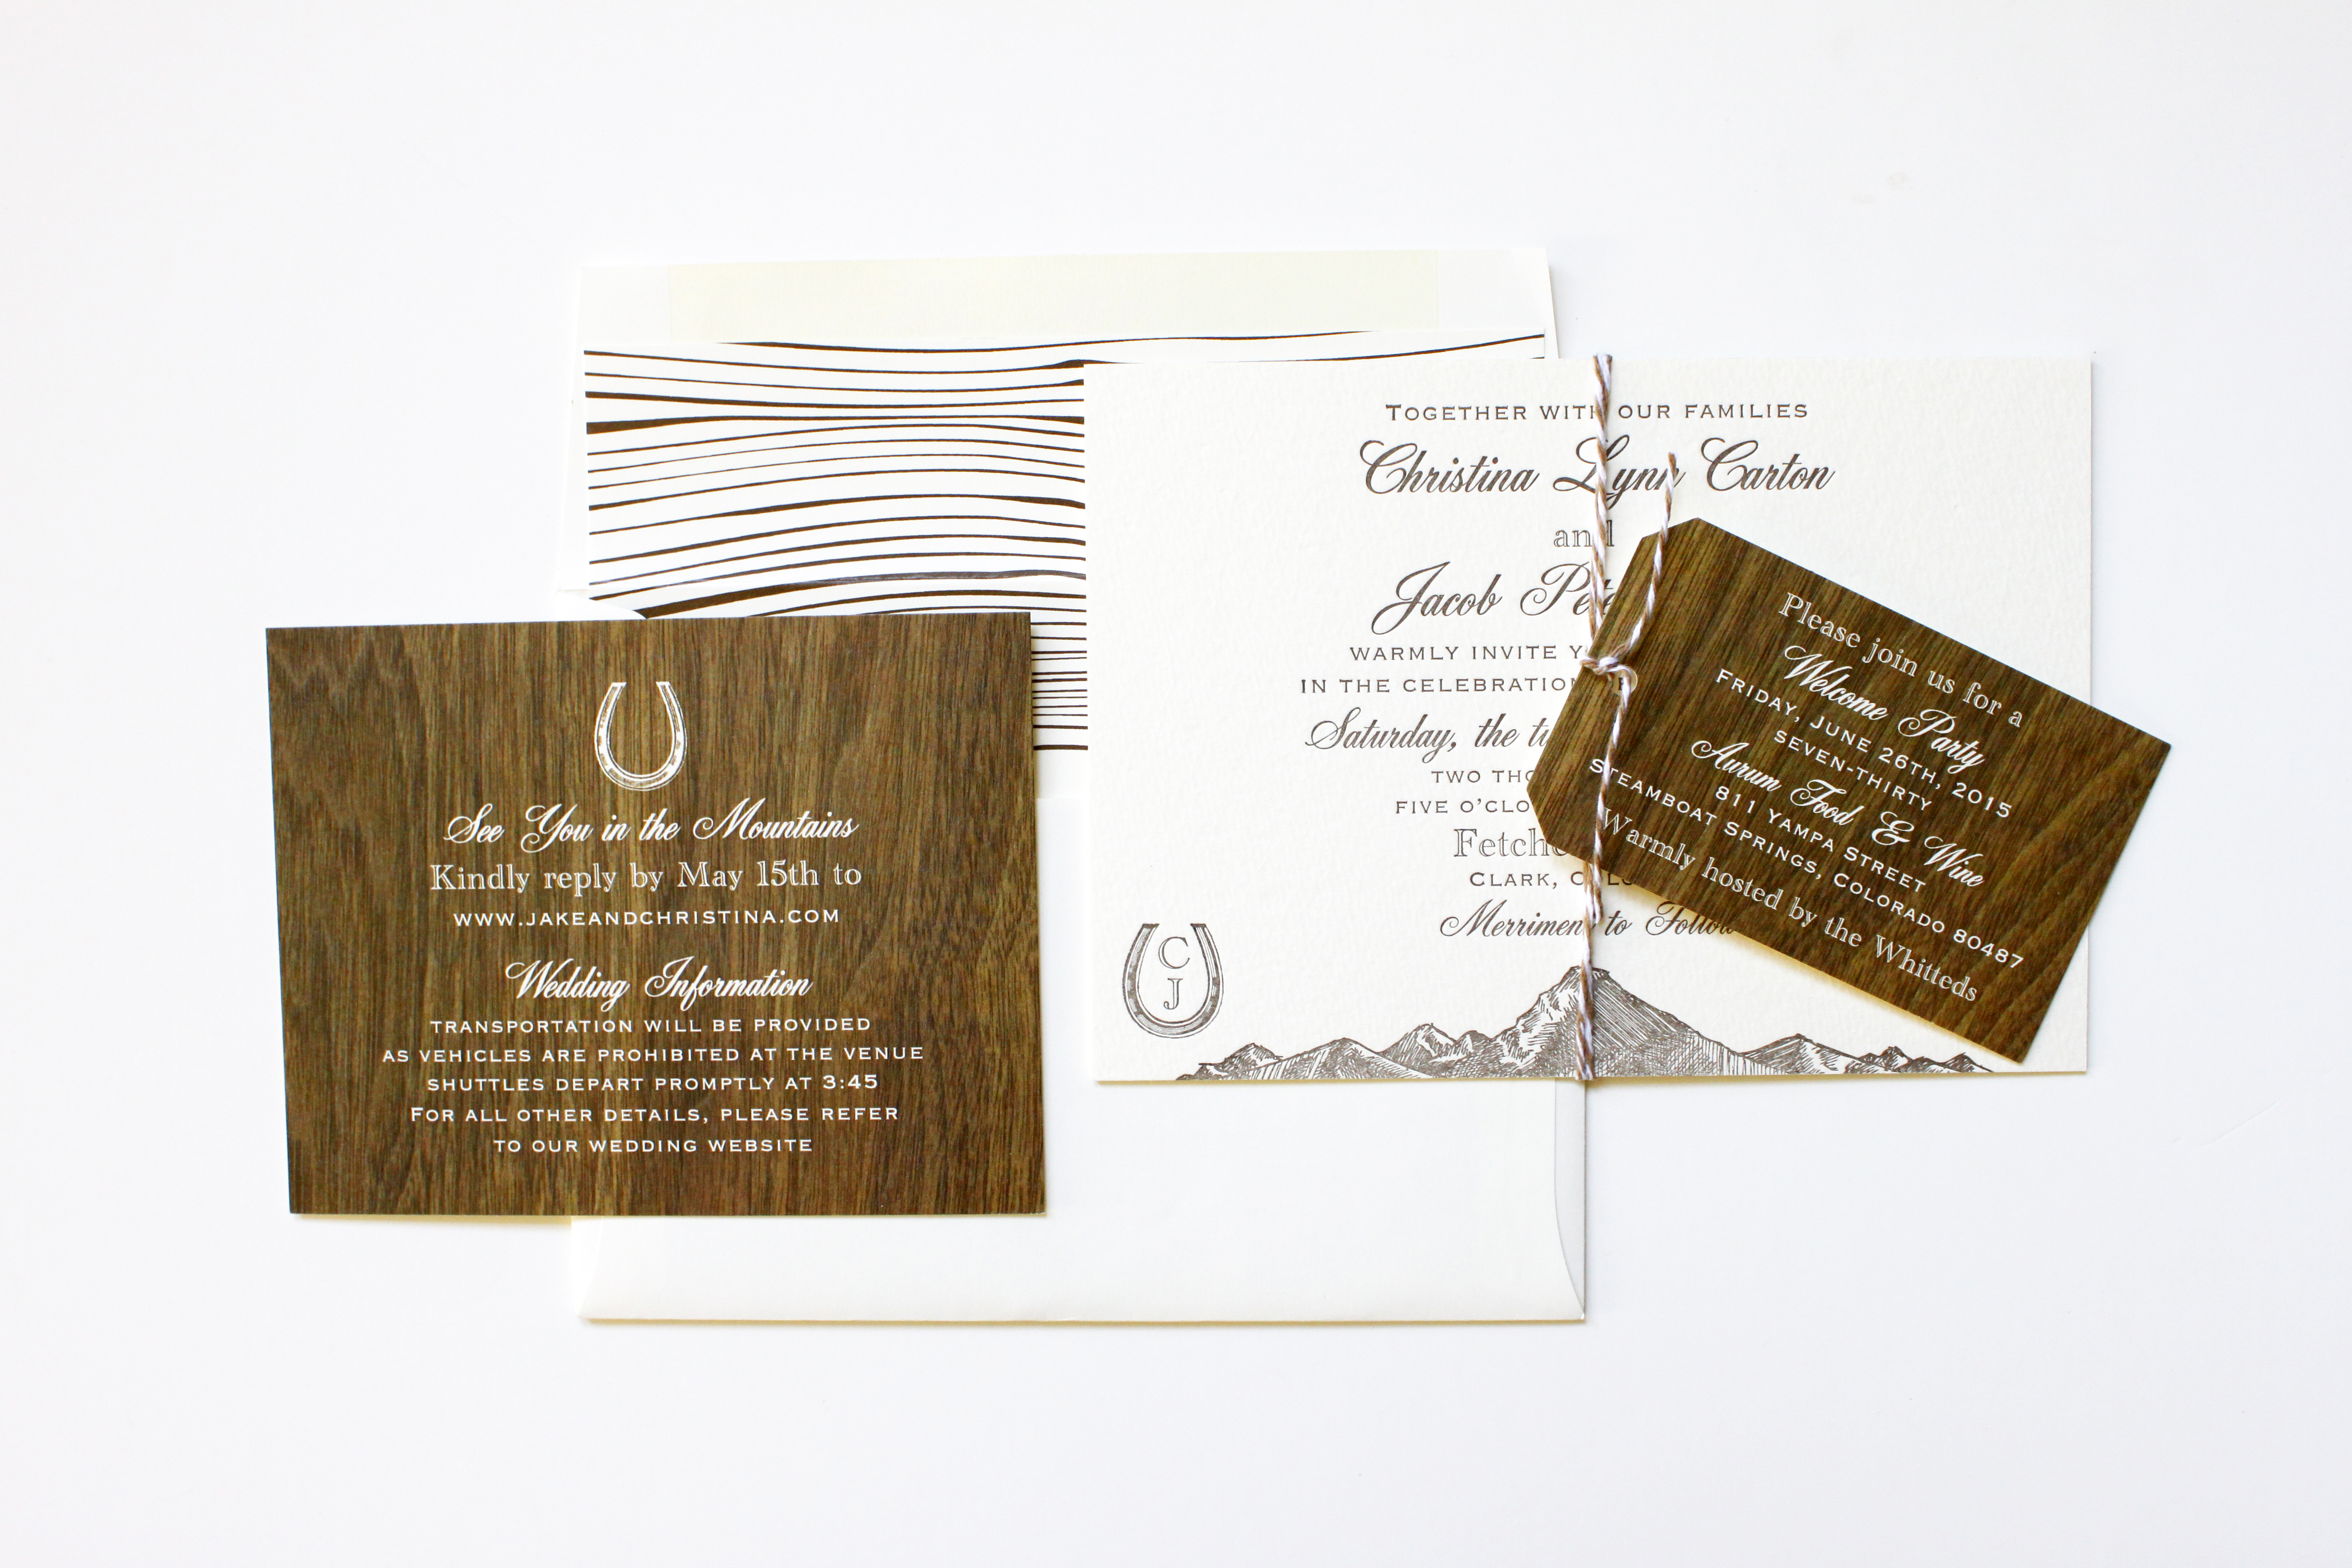 Wood printed rustic mountain weding invitations | via Wordshop, Denver CO